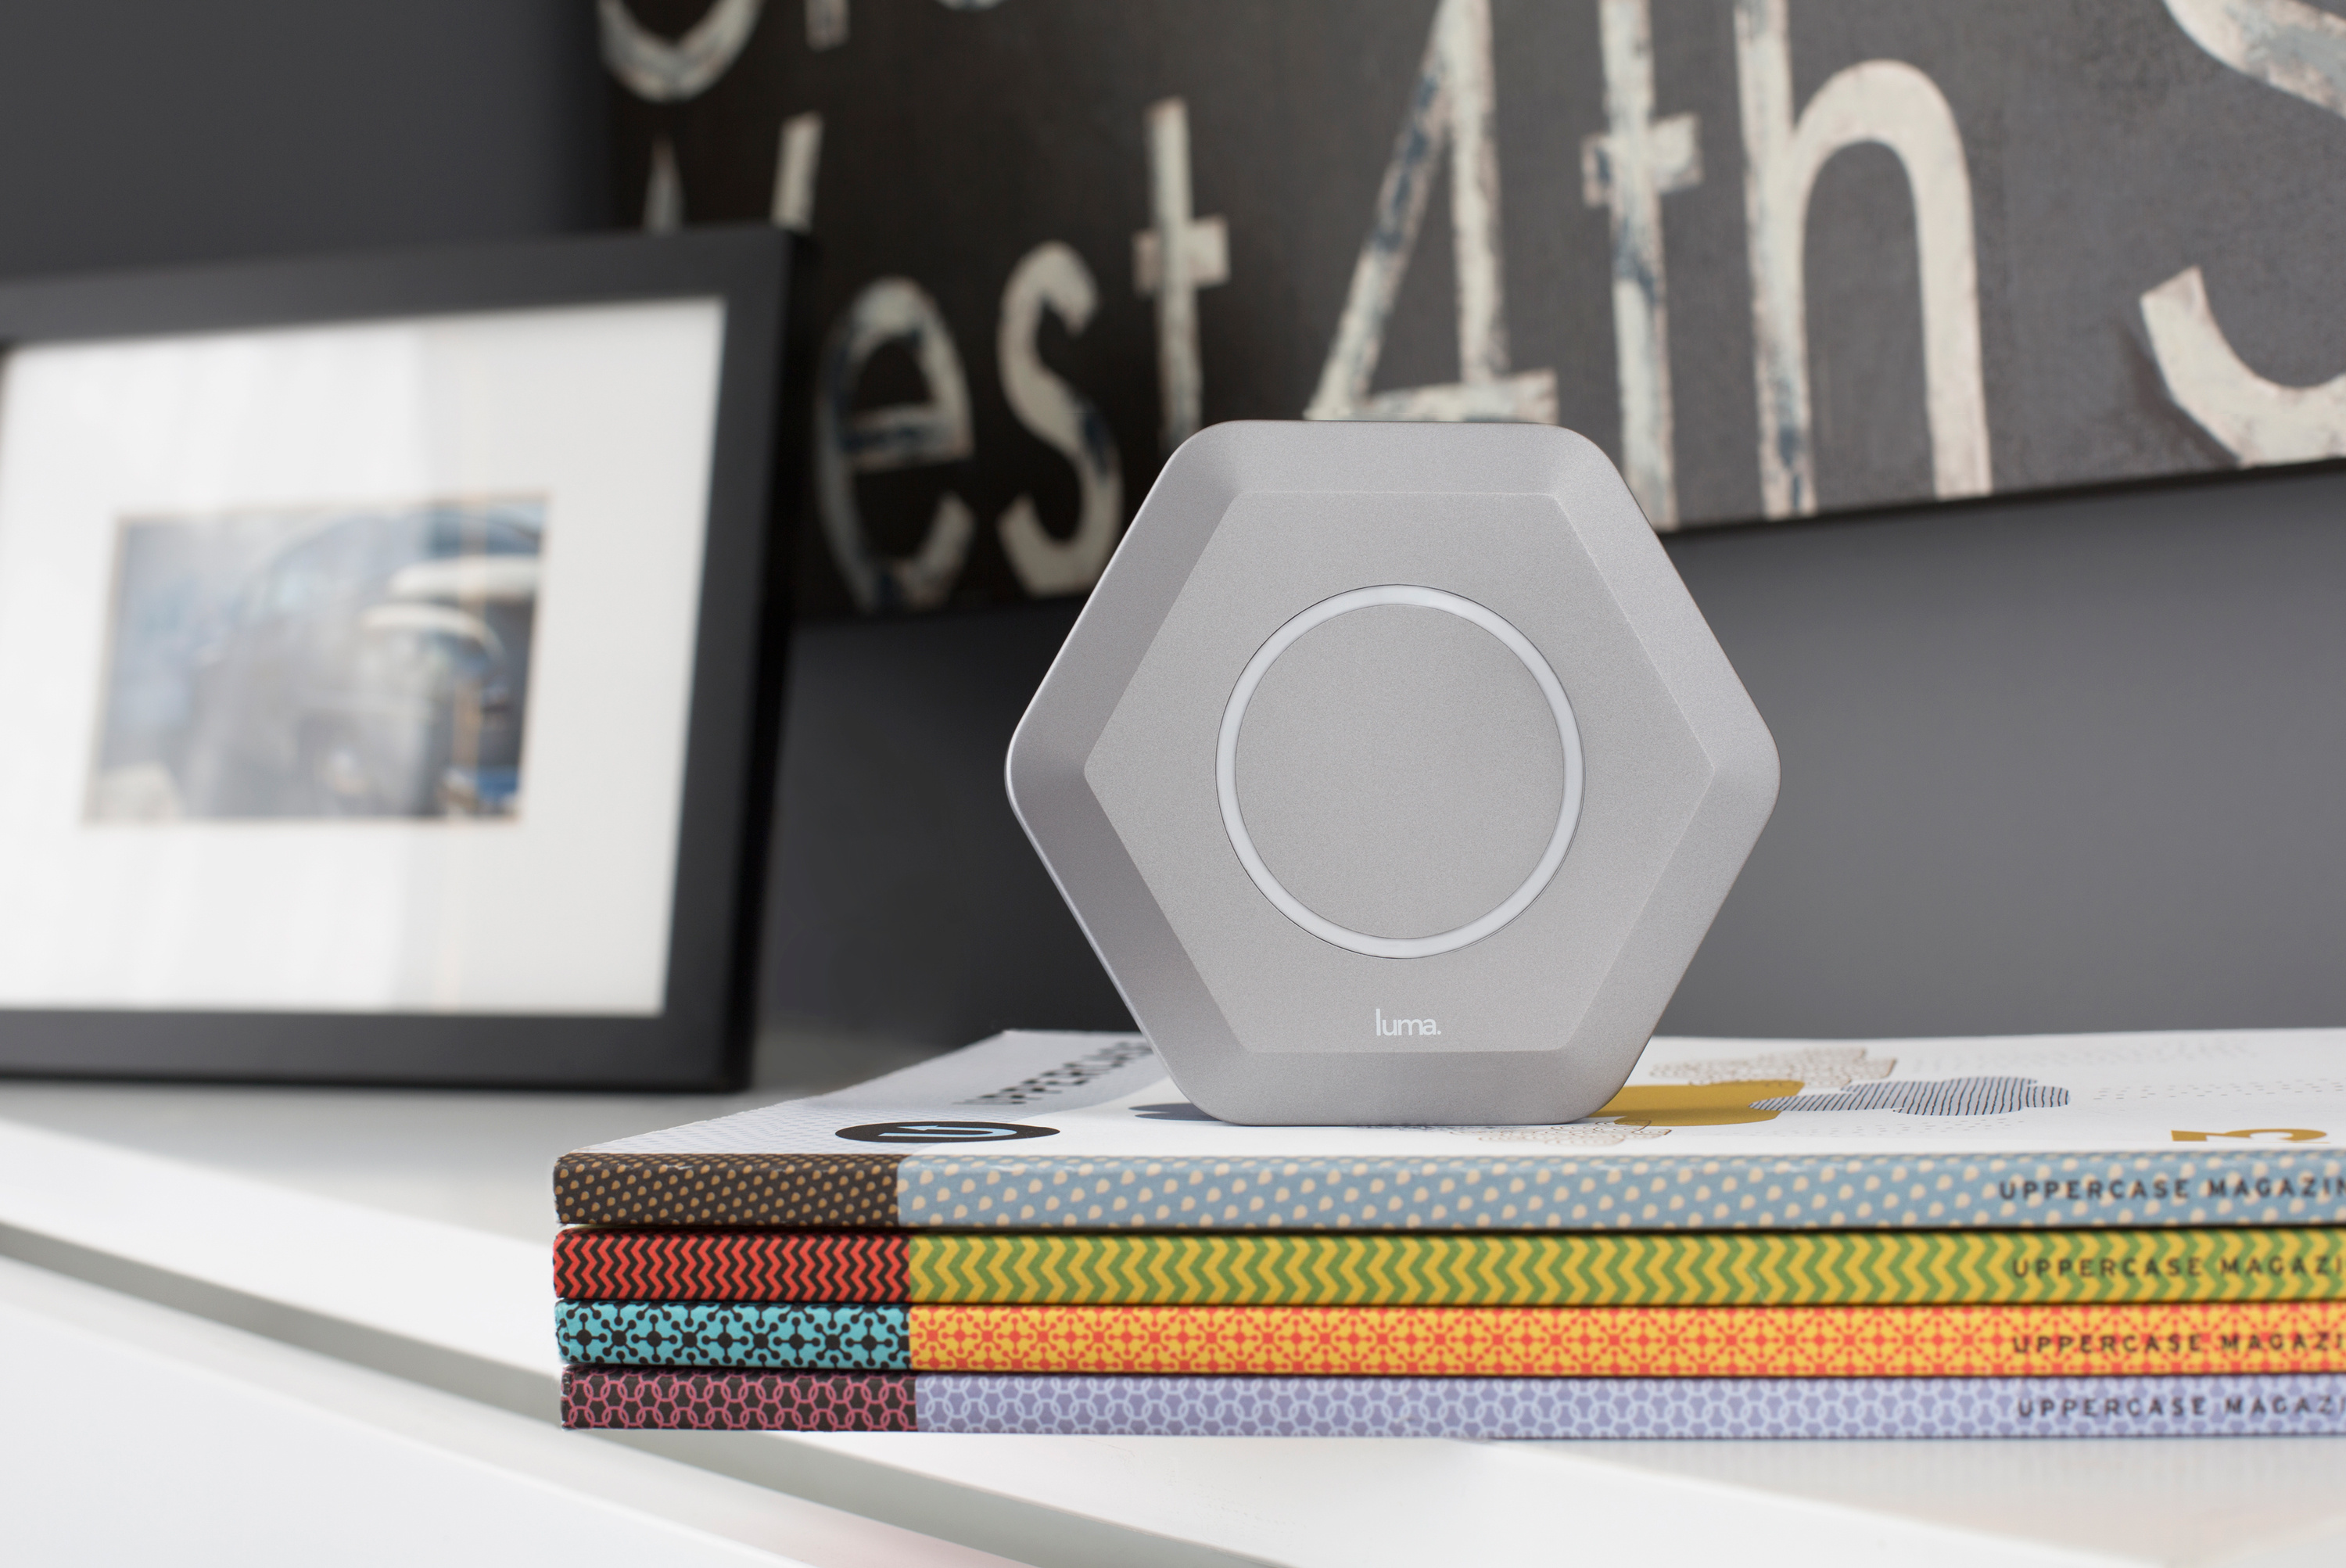 Meet Luma, a new device to better control your home Wi-Fi network